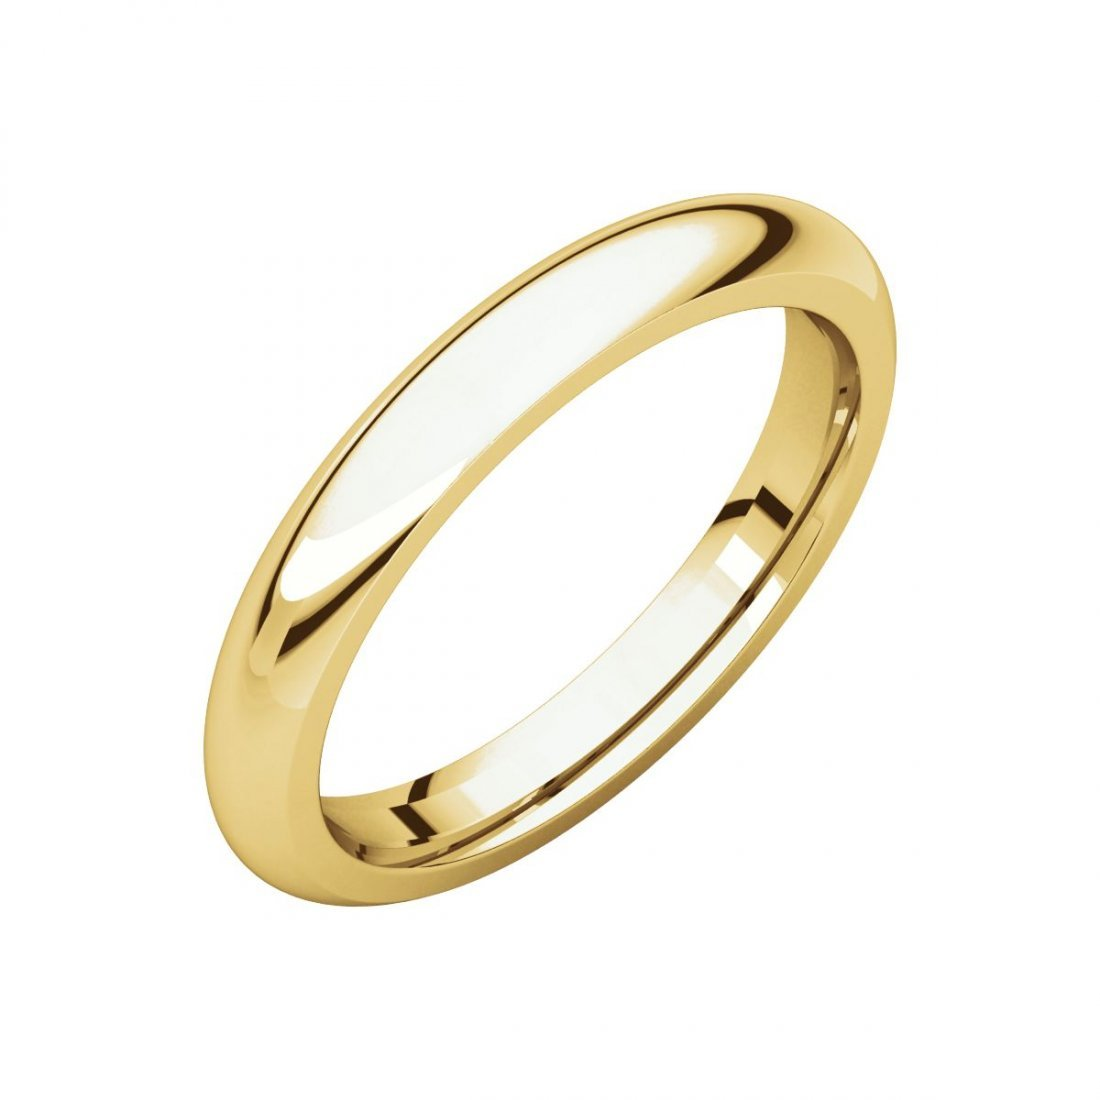 Ring - 14k Yellow Gold 3mm Comfort Fit Band